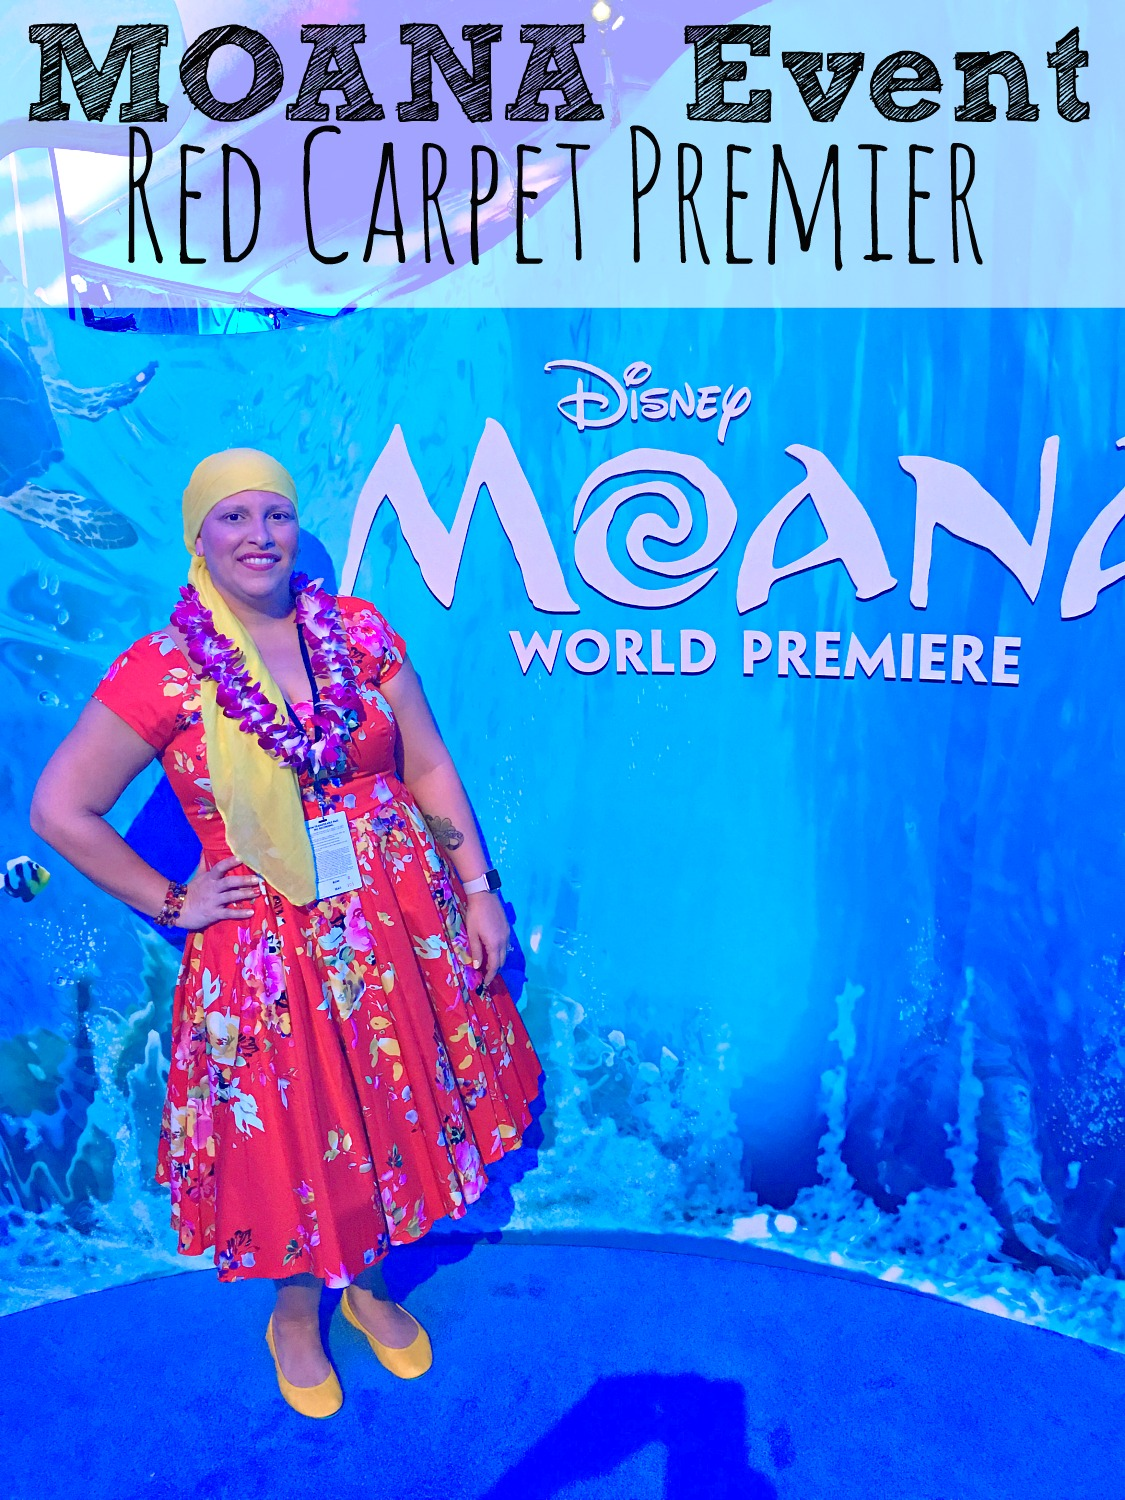 moana-event-red-carpet-premier